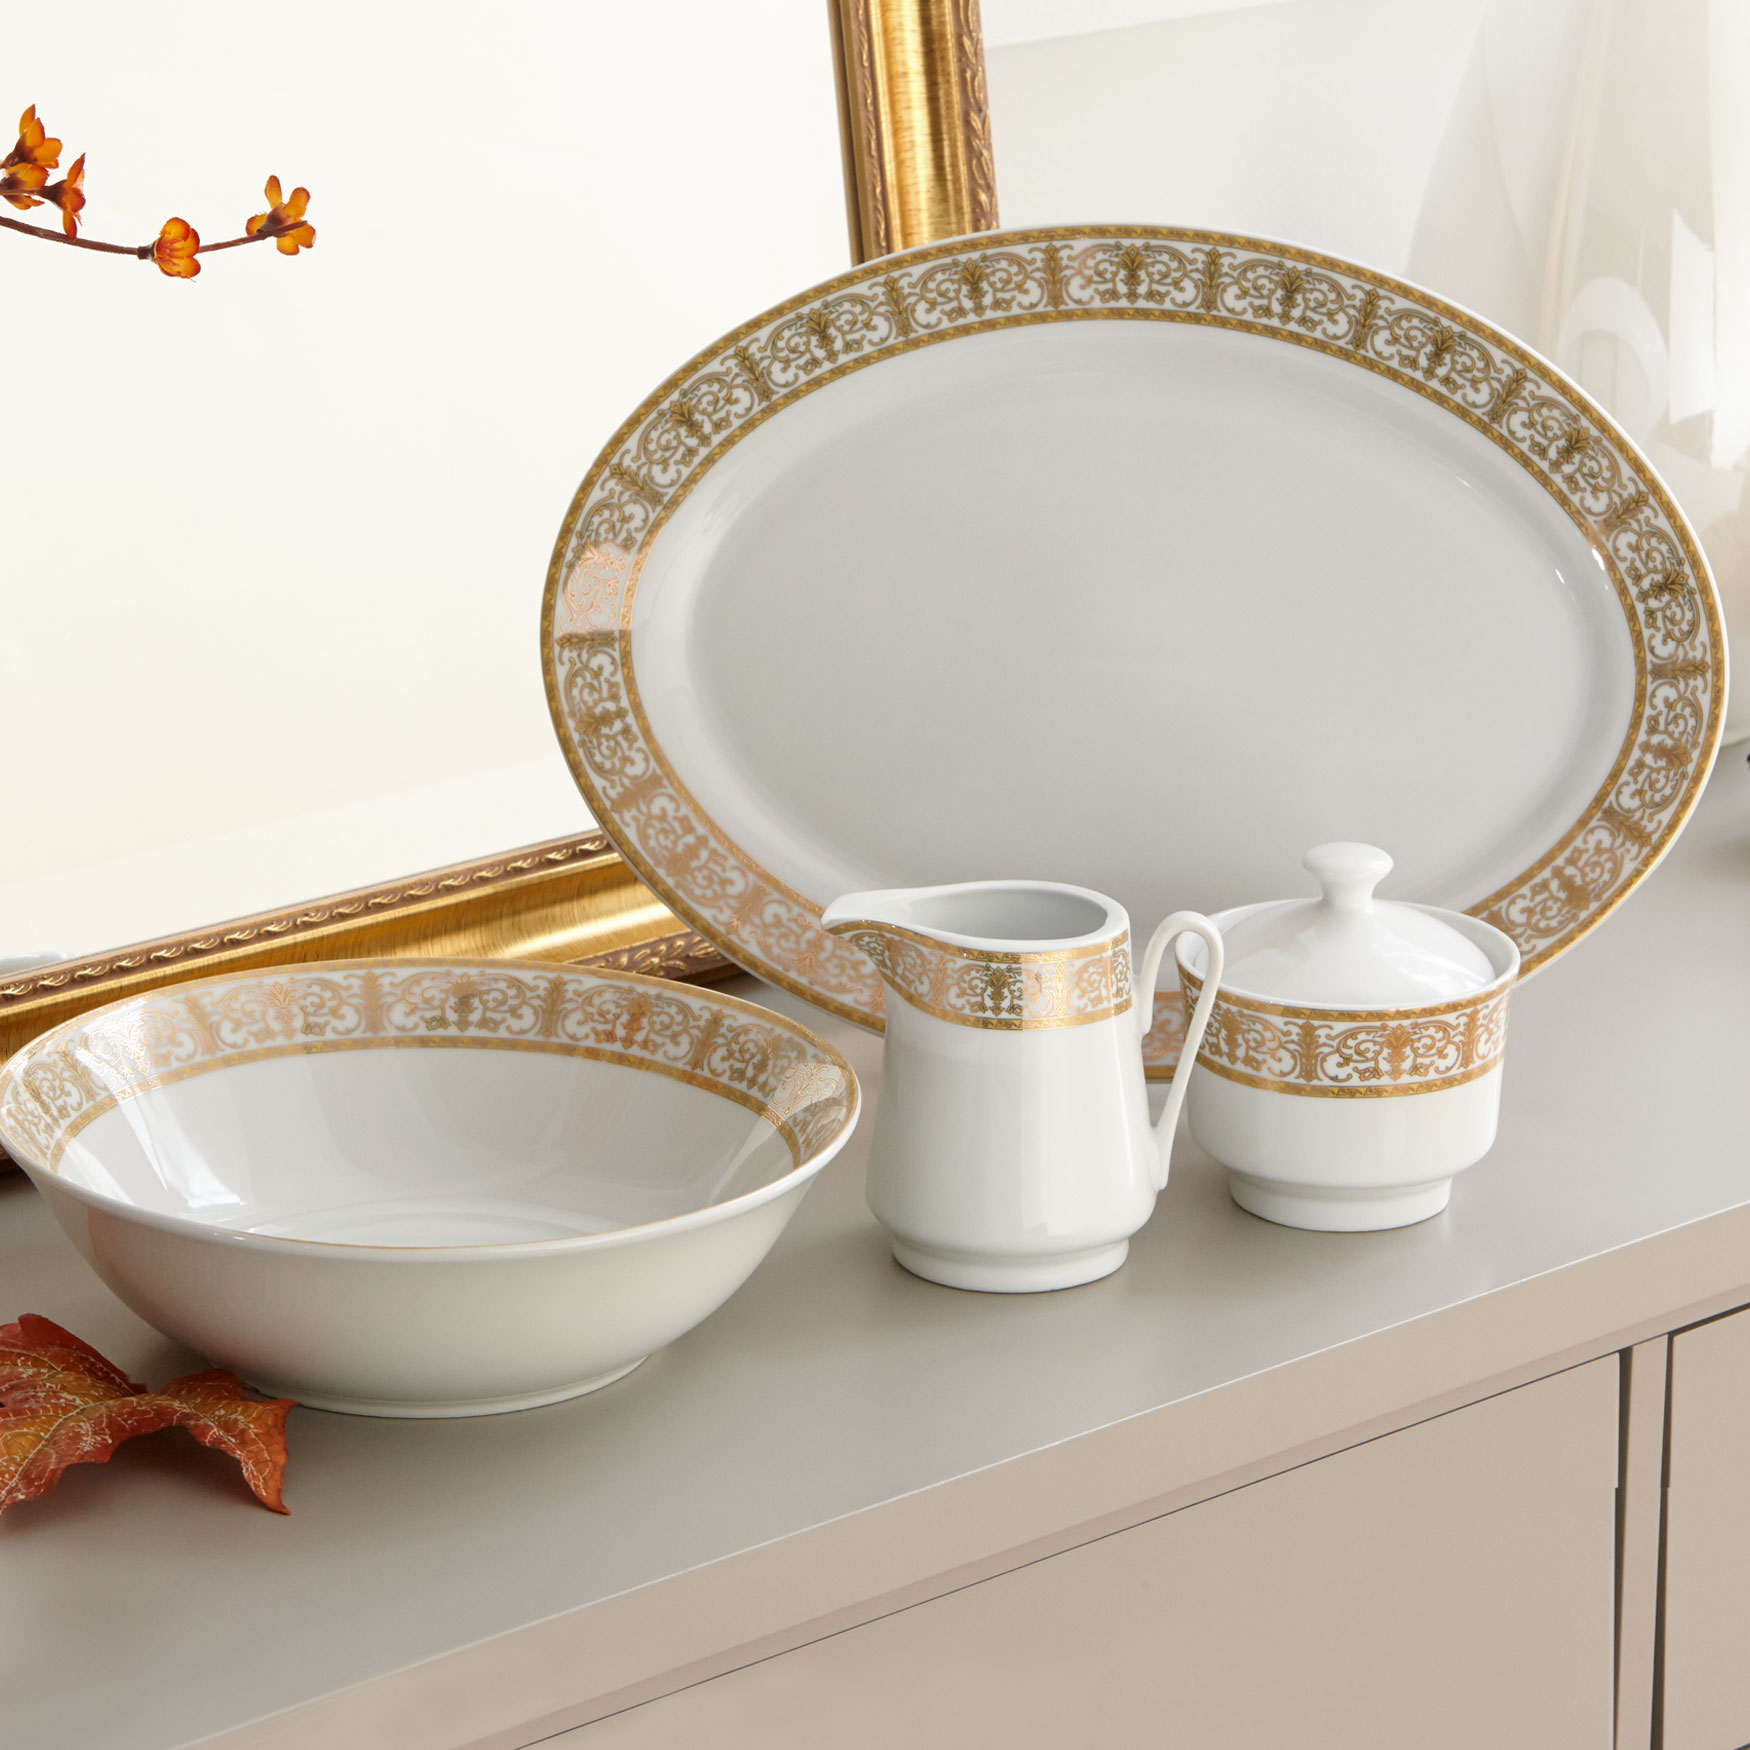 Medici 5-Pc. Porcelain Completer Set, GOLD WHITE